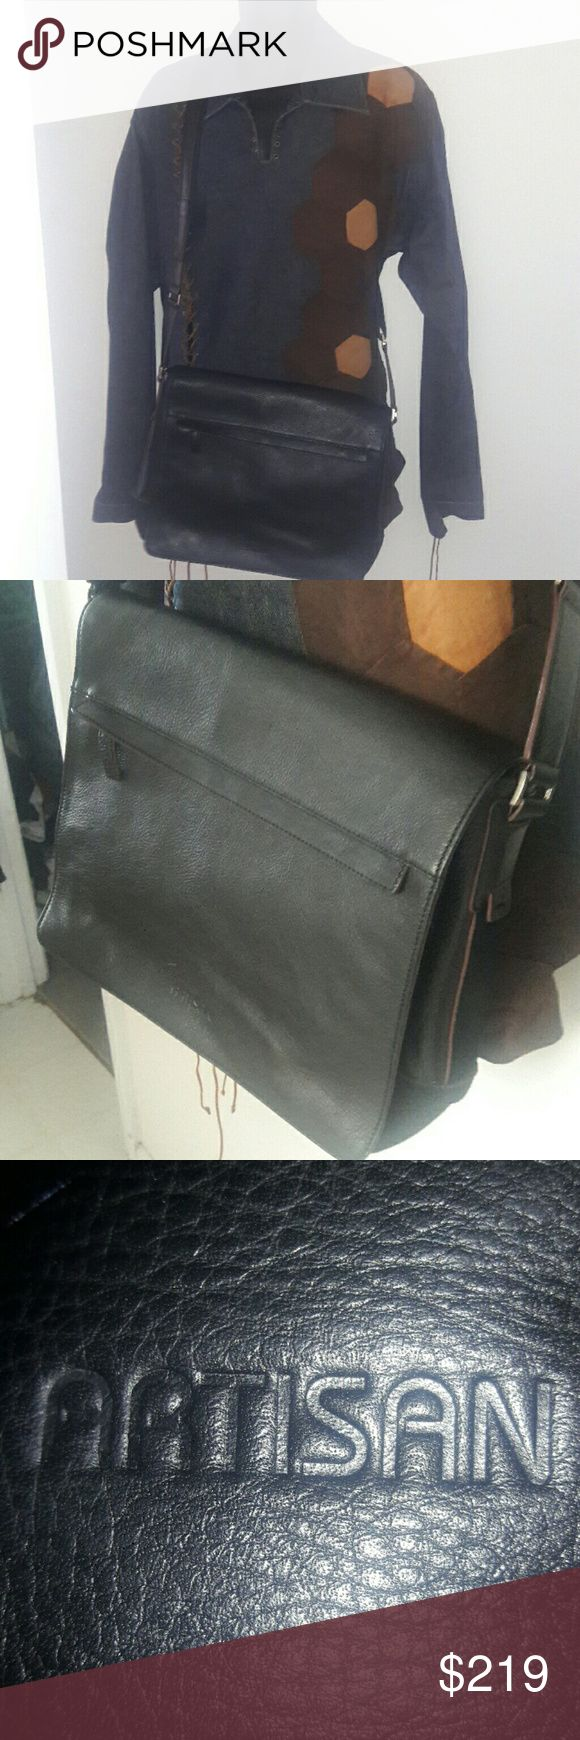 ARTISAN Handcrafted Leather Messenger Bag This awesome Artisan handcrafted leather messenger bag is a black, supple carrying case, perfect for transporting everything from your documents to your laptop in style. It has a matching, adjustable shoulder strap and is in great, gently-used condition. Artisan Bags Messenger Bags